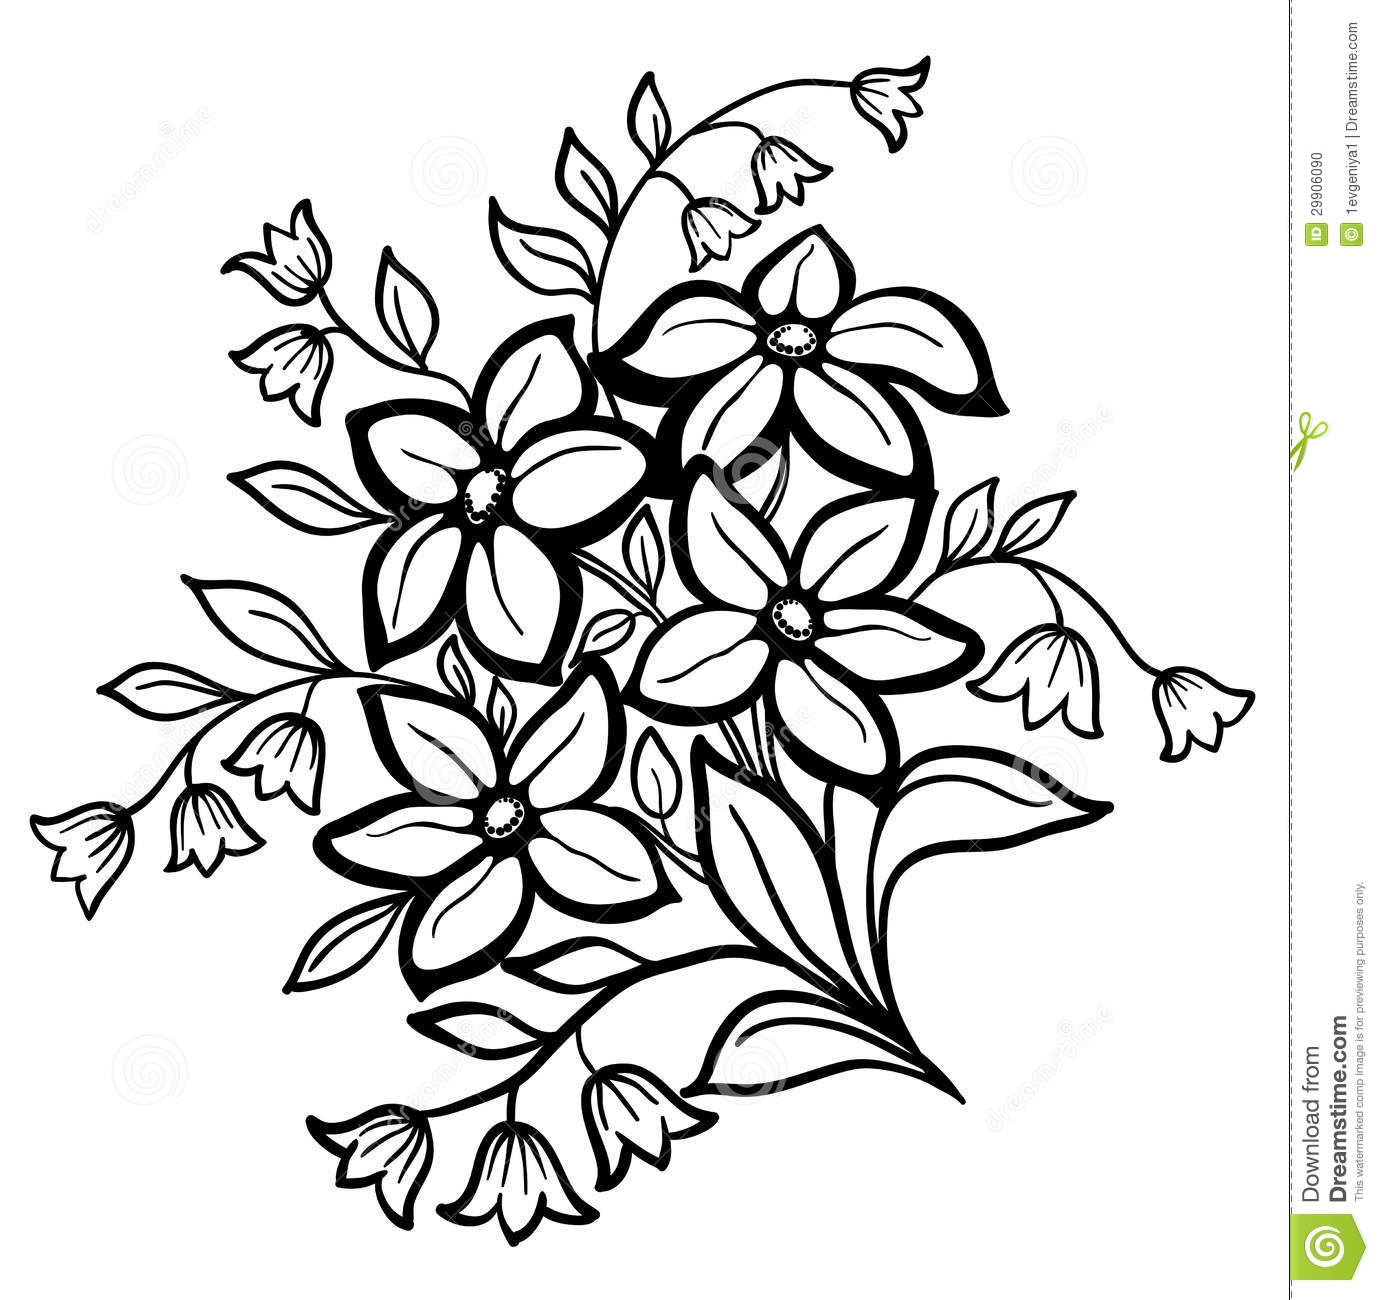 Flower arrangement a black outline on a white background stock flower arrangement a black outline on a white background mightylinksfo Gallery